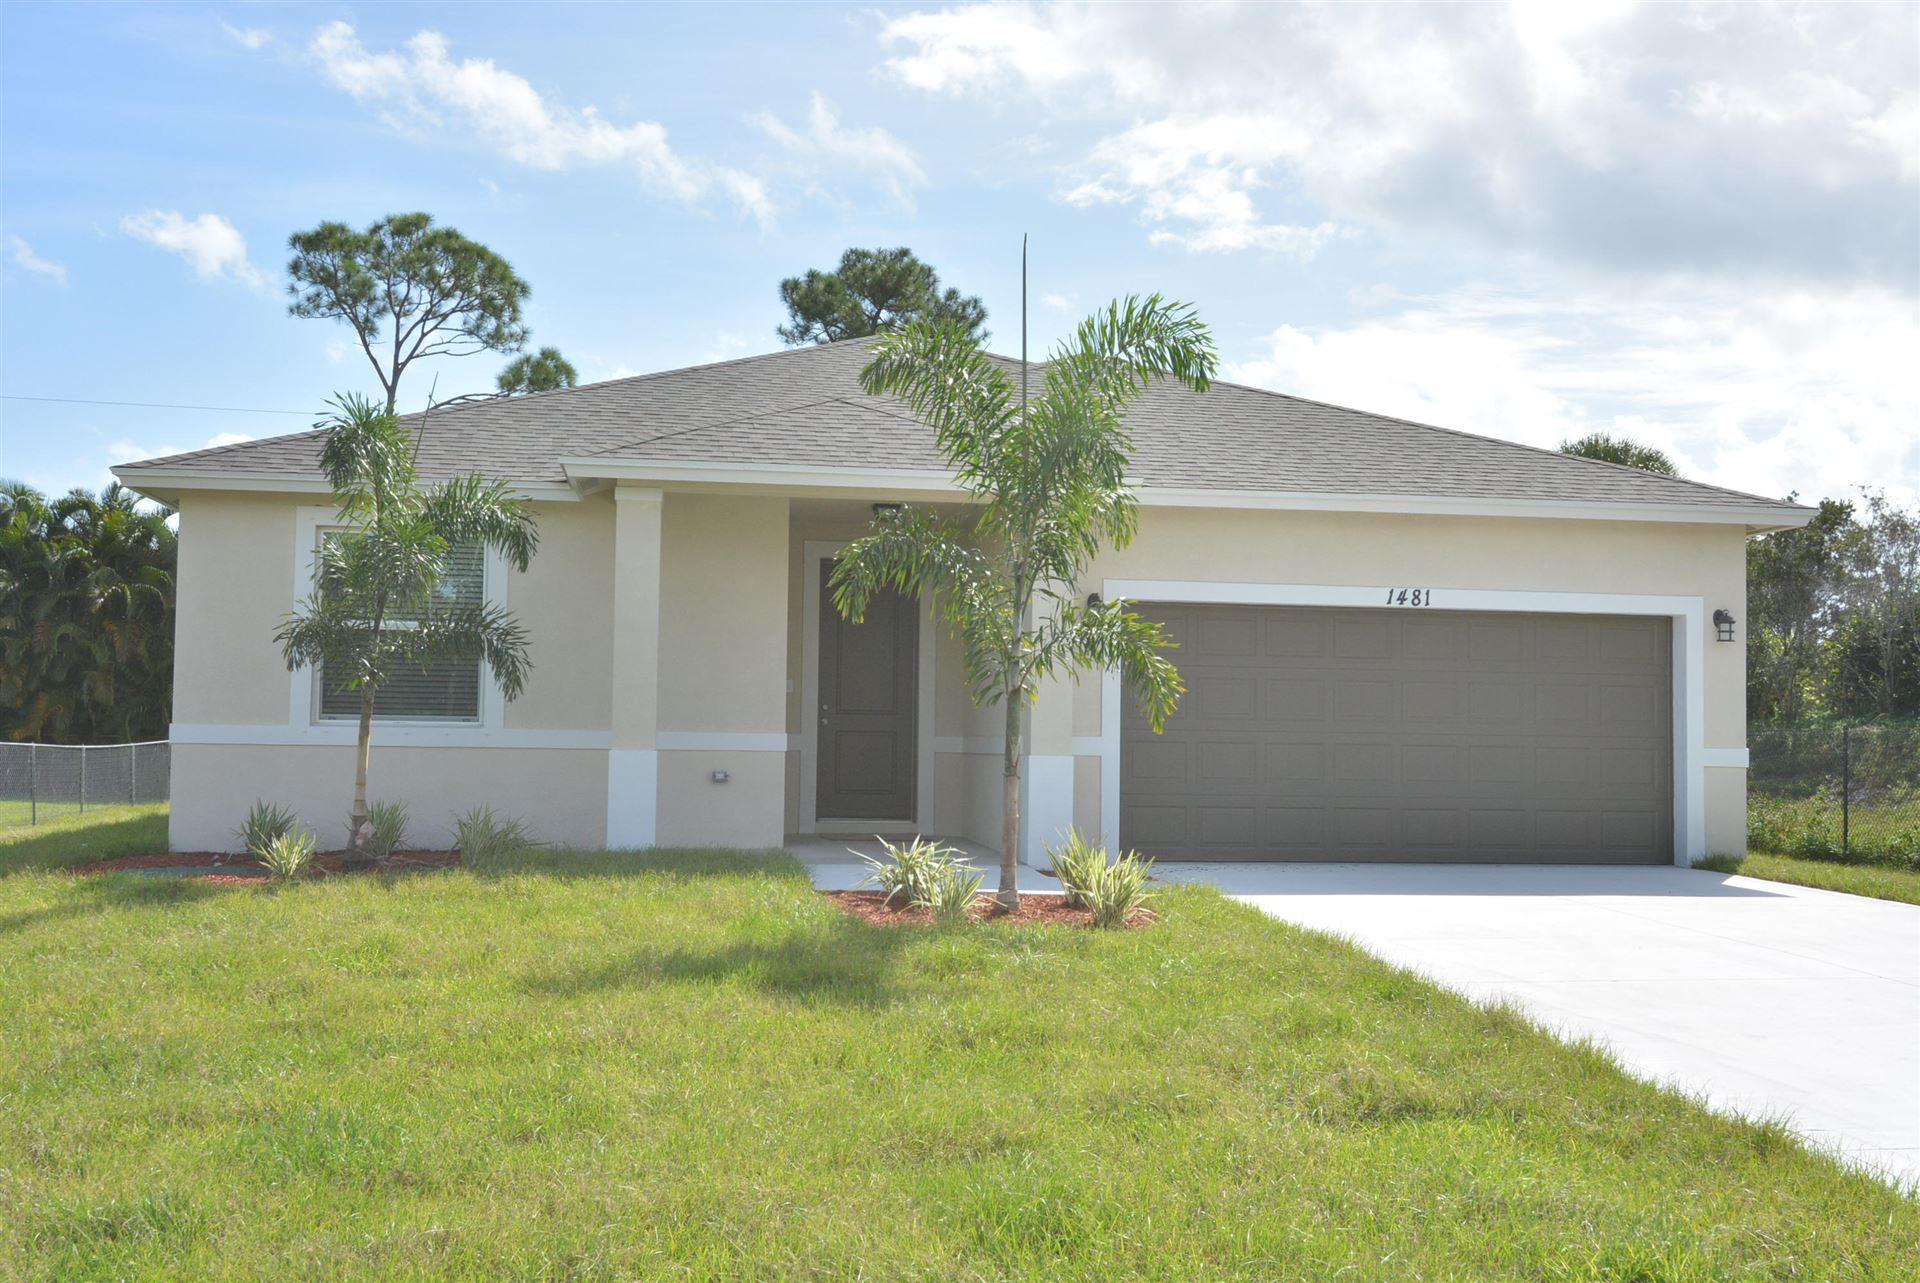 5442 NW Comer Street, Port Saint Lucie, FL 34986 - #: RX-10660761